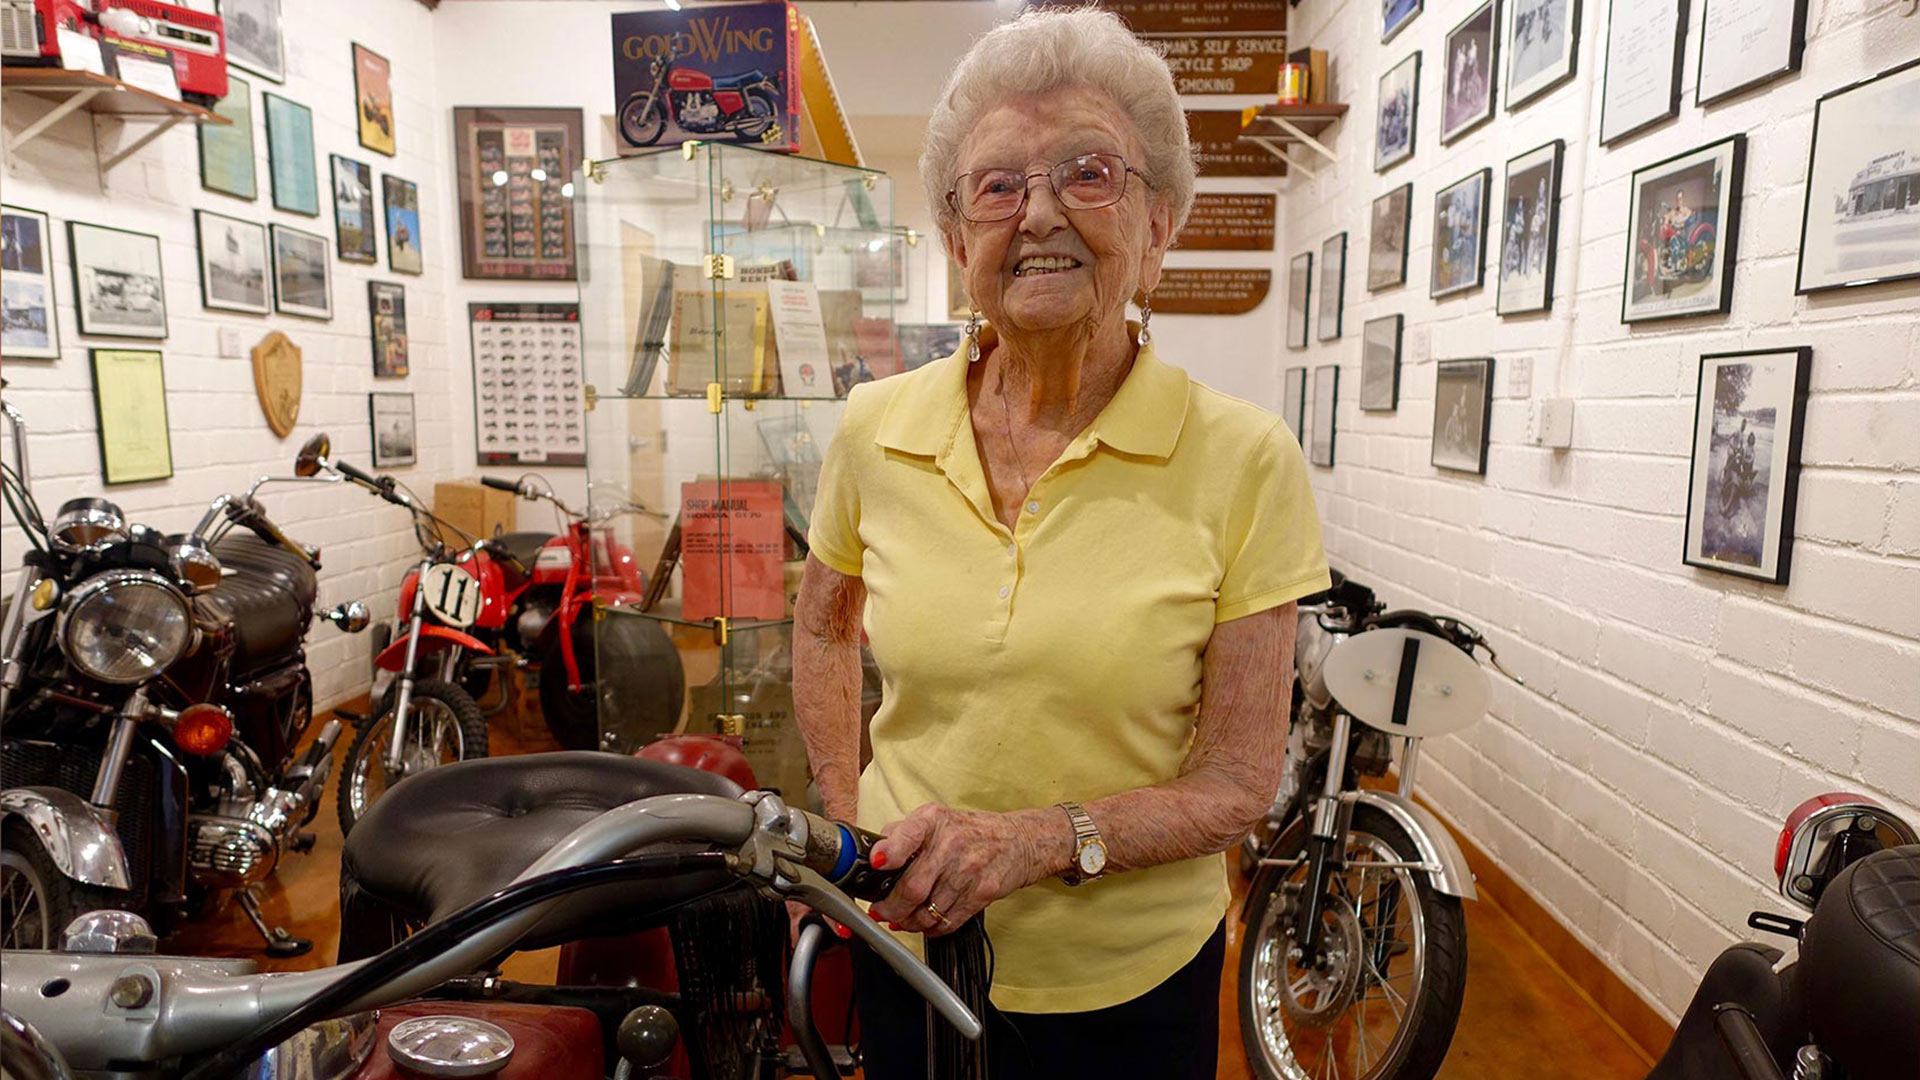 Helen Musselman in her motorcycle shop.